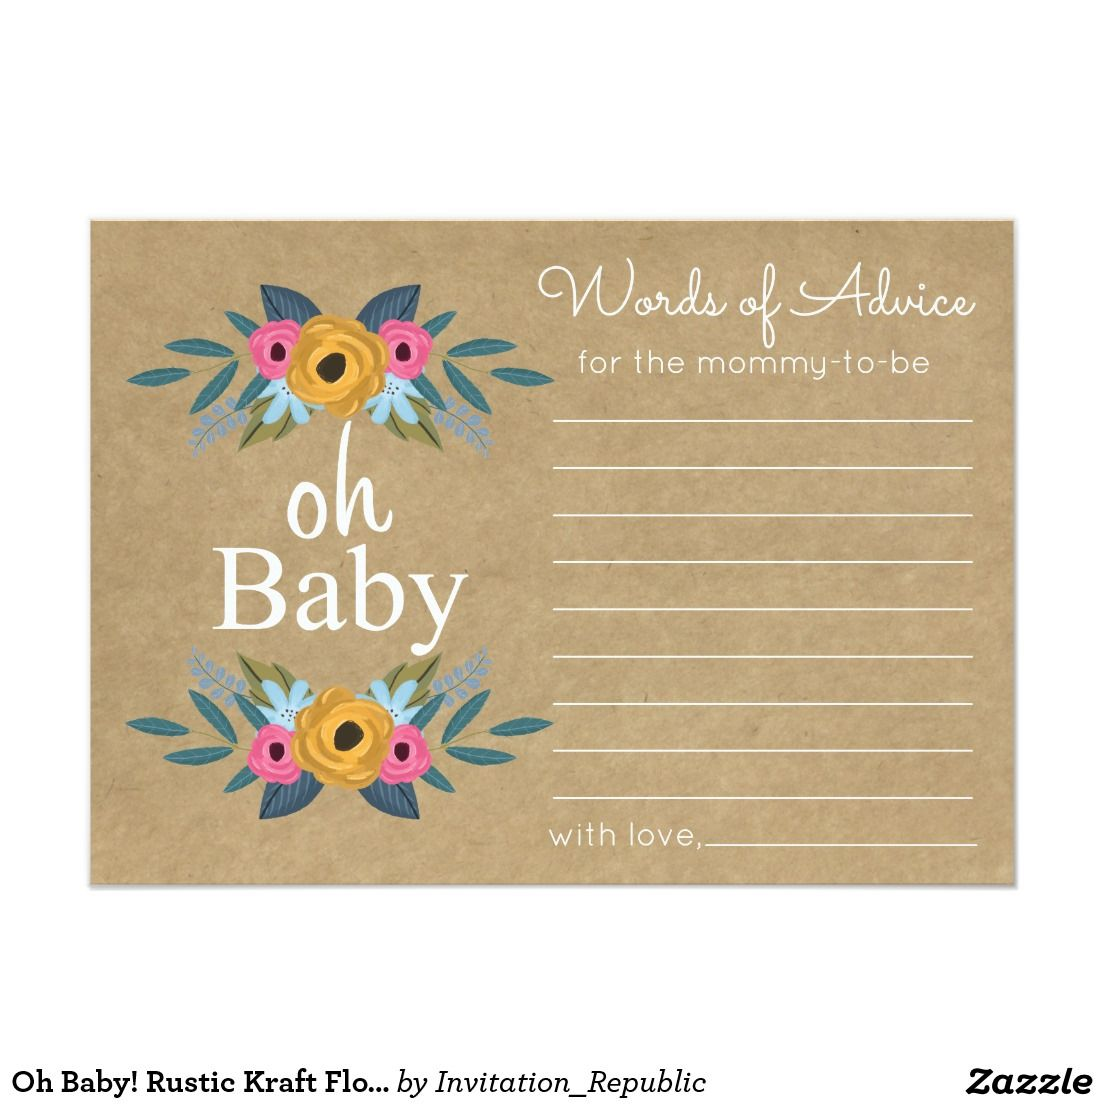 Baby Rustic Kraft Floral Wreath Baby Shower Card